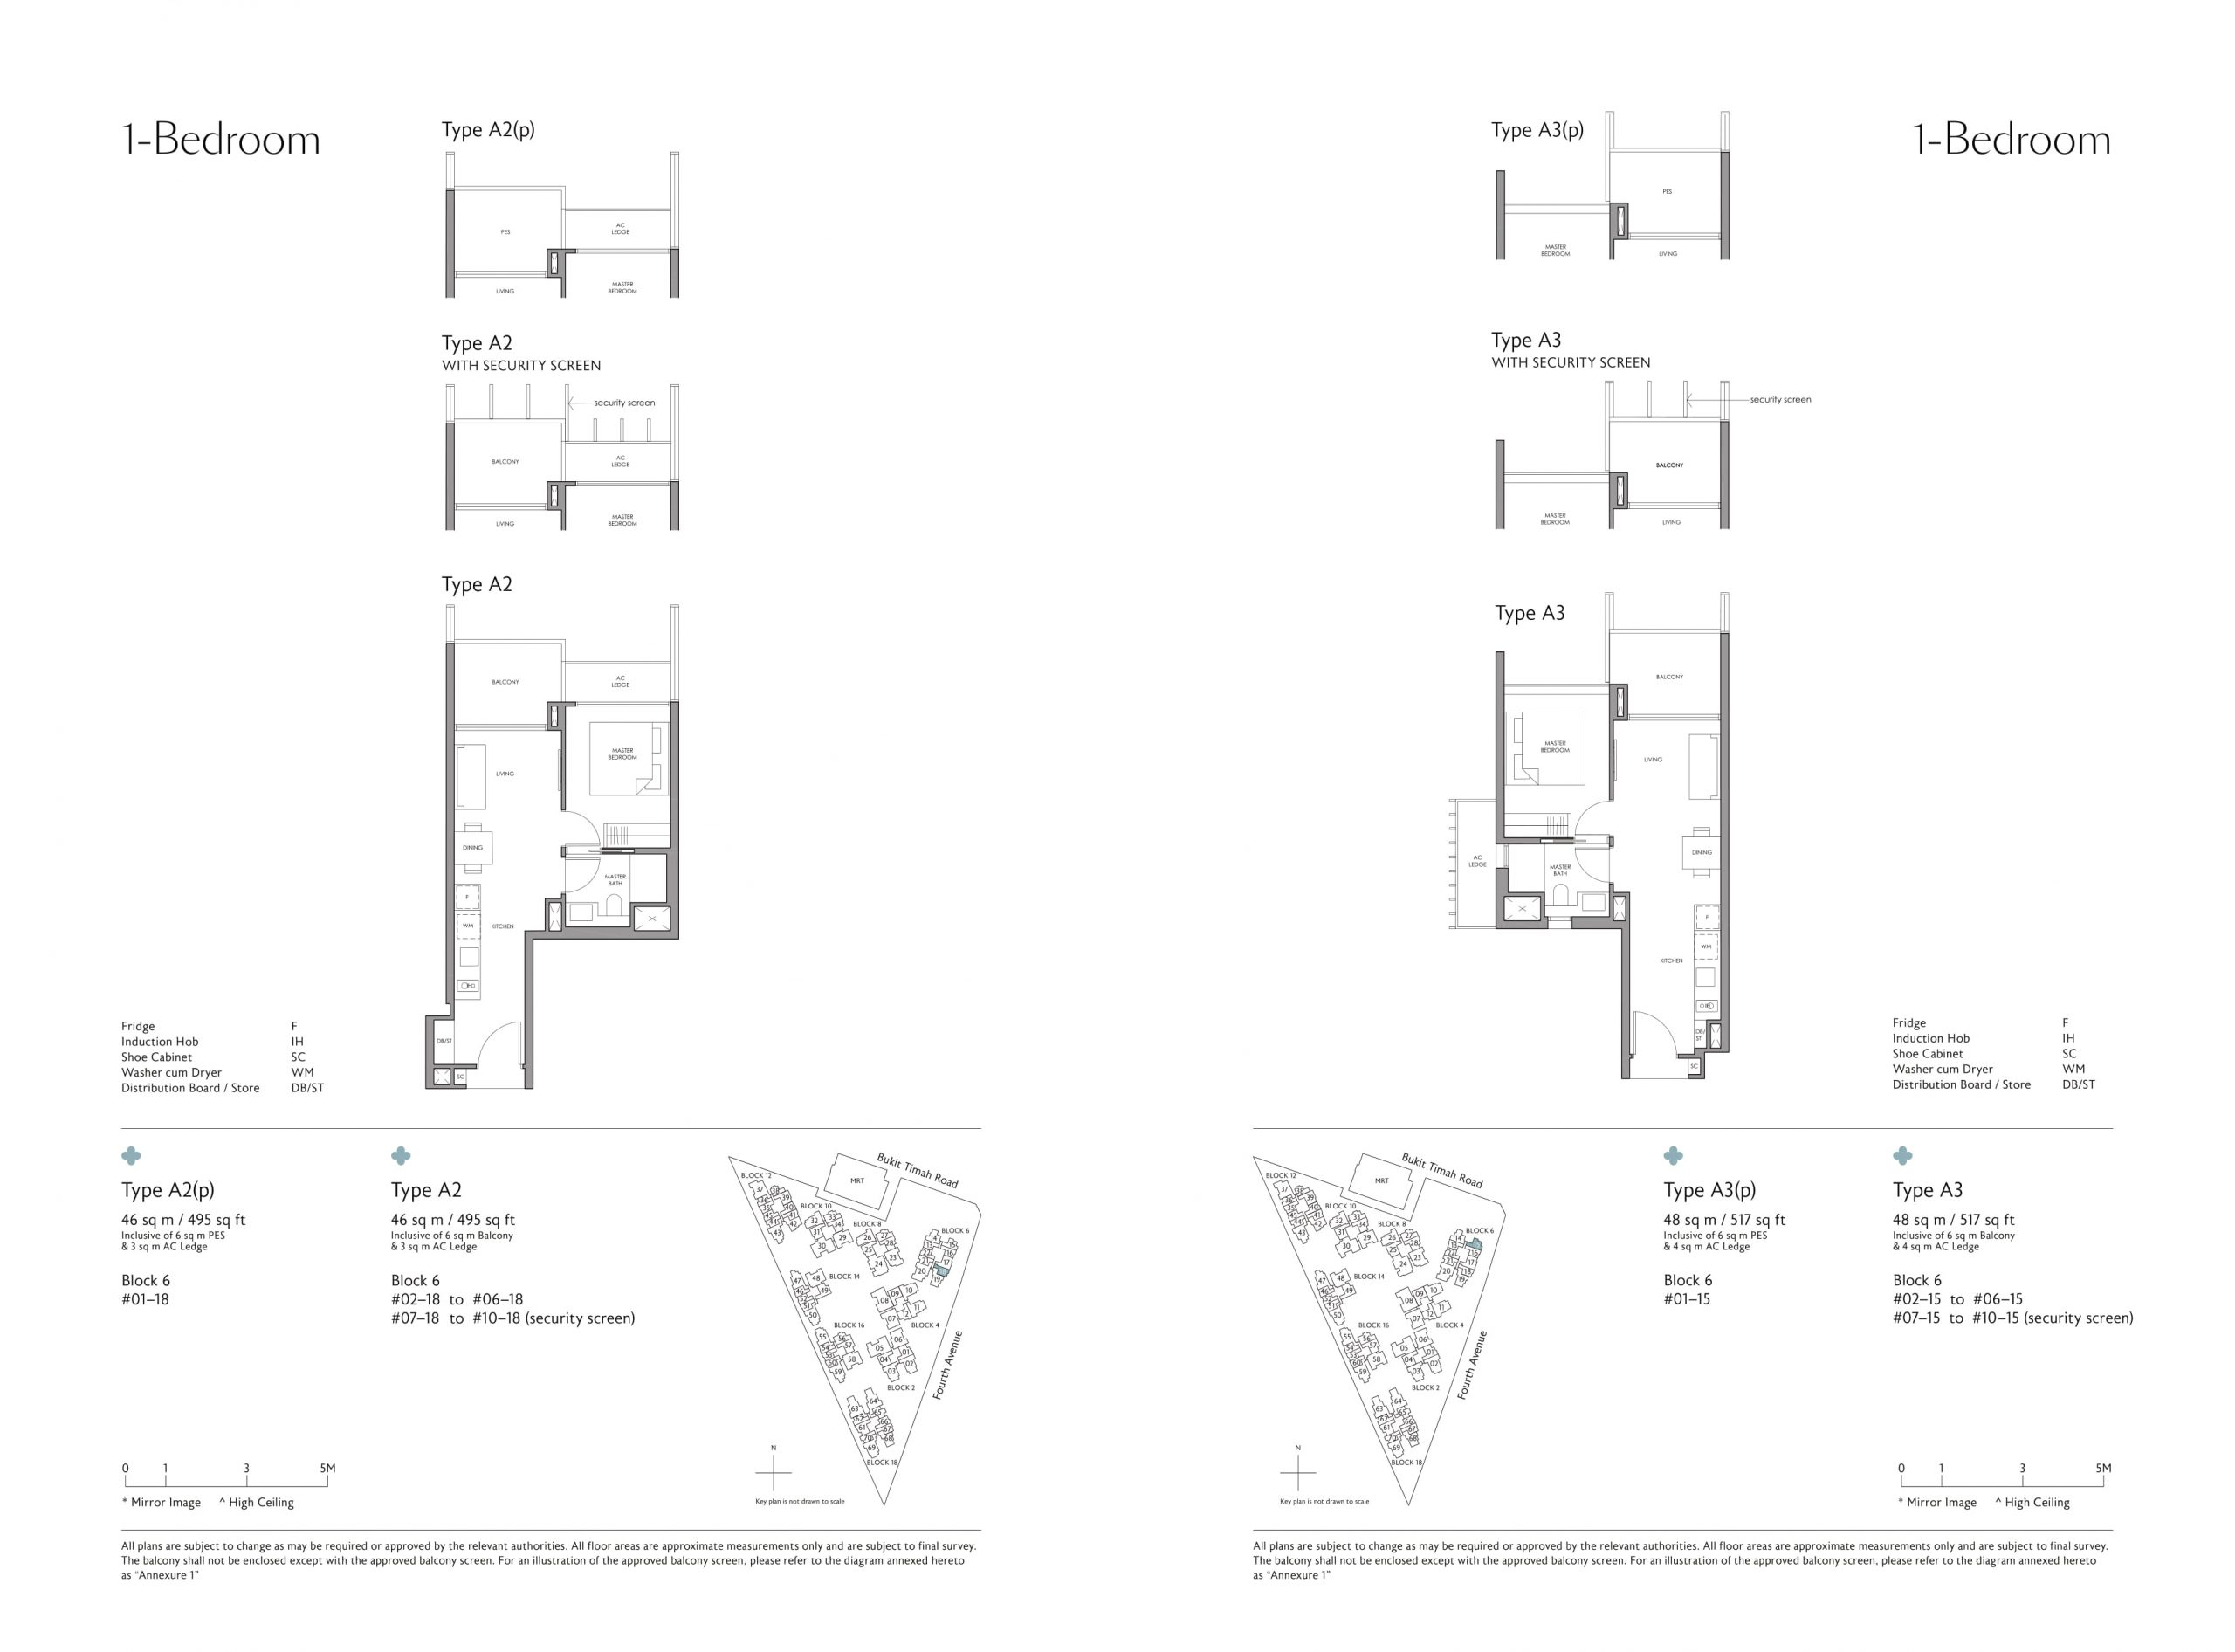 Fourth Avenue Residences' one-bedroom types